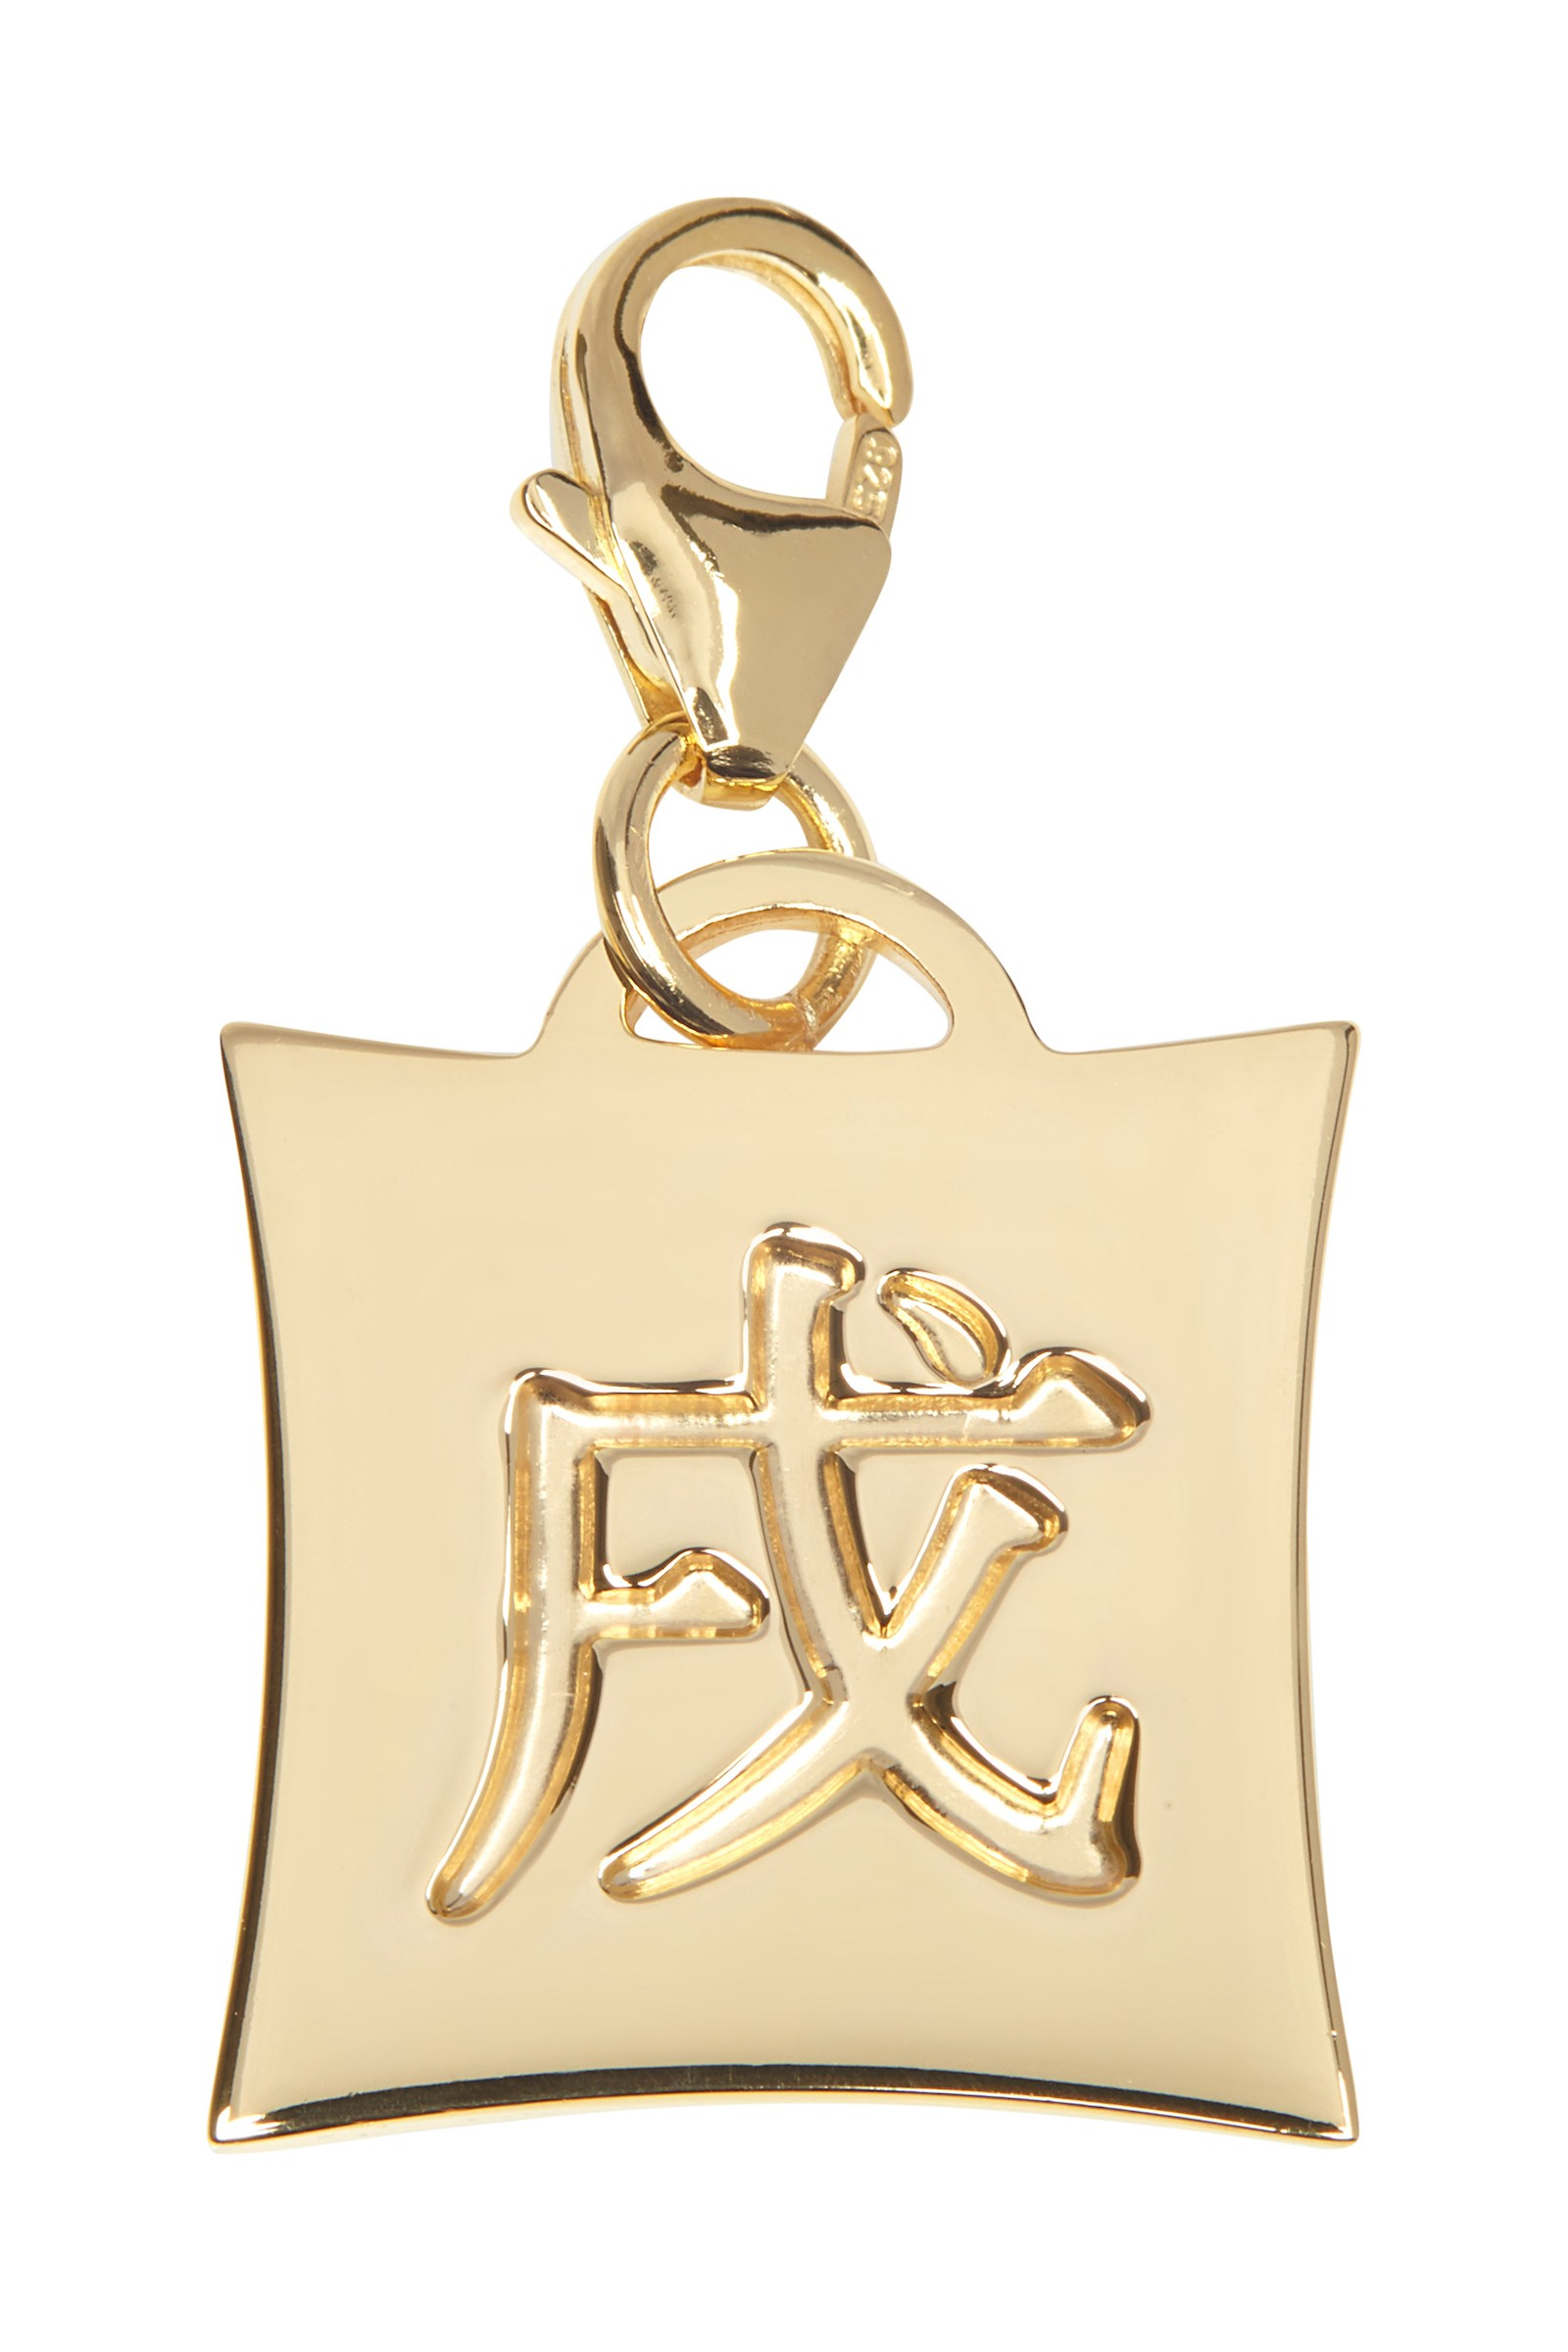 Japanese Star Sign Charm - Dog - 18KT Gold Plated